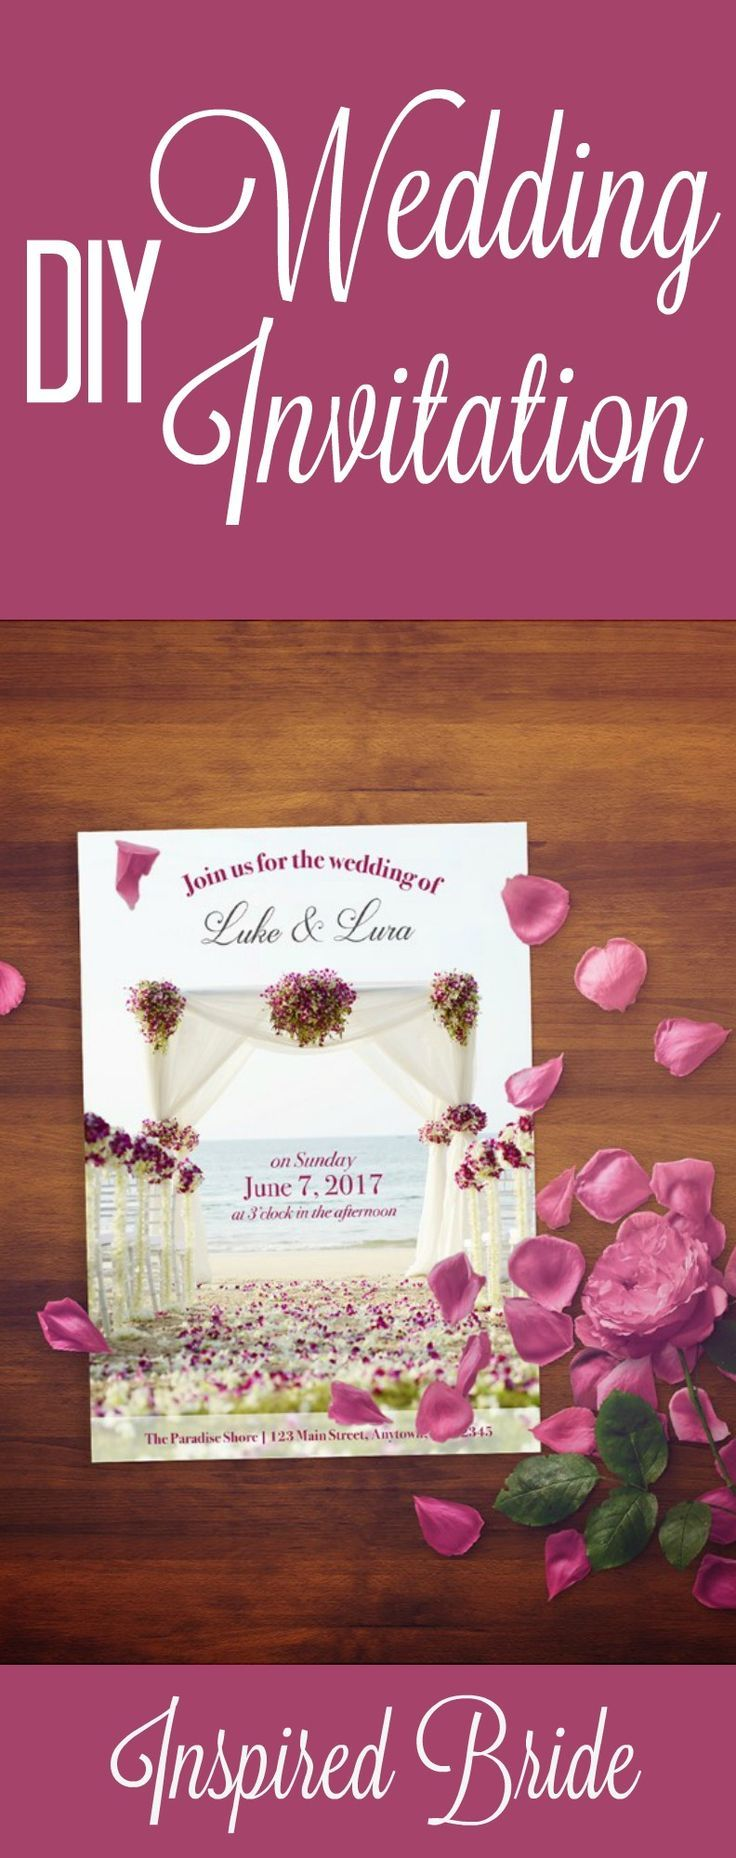 How to Design and Print Your Own Wedding Invitations | Pinterest ...